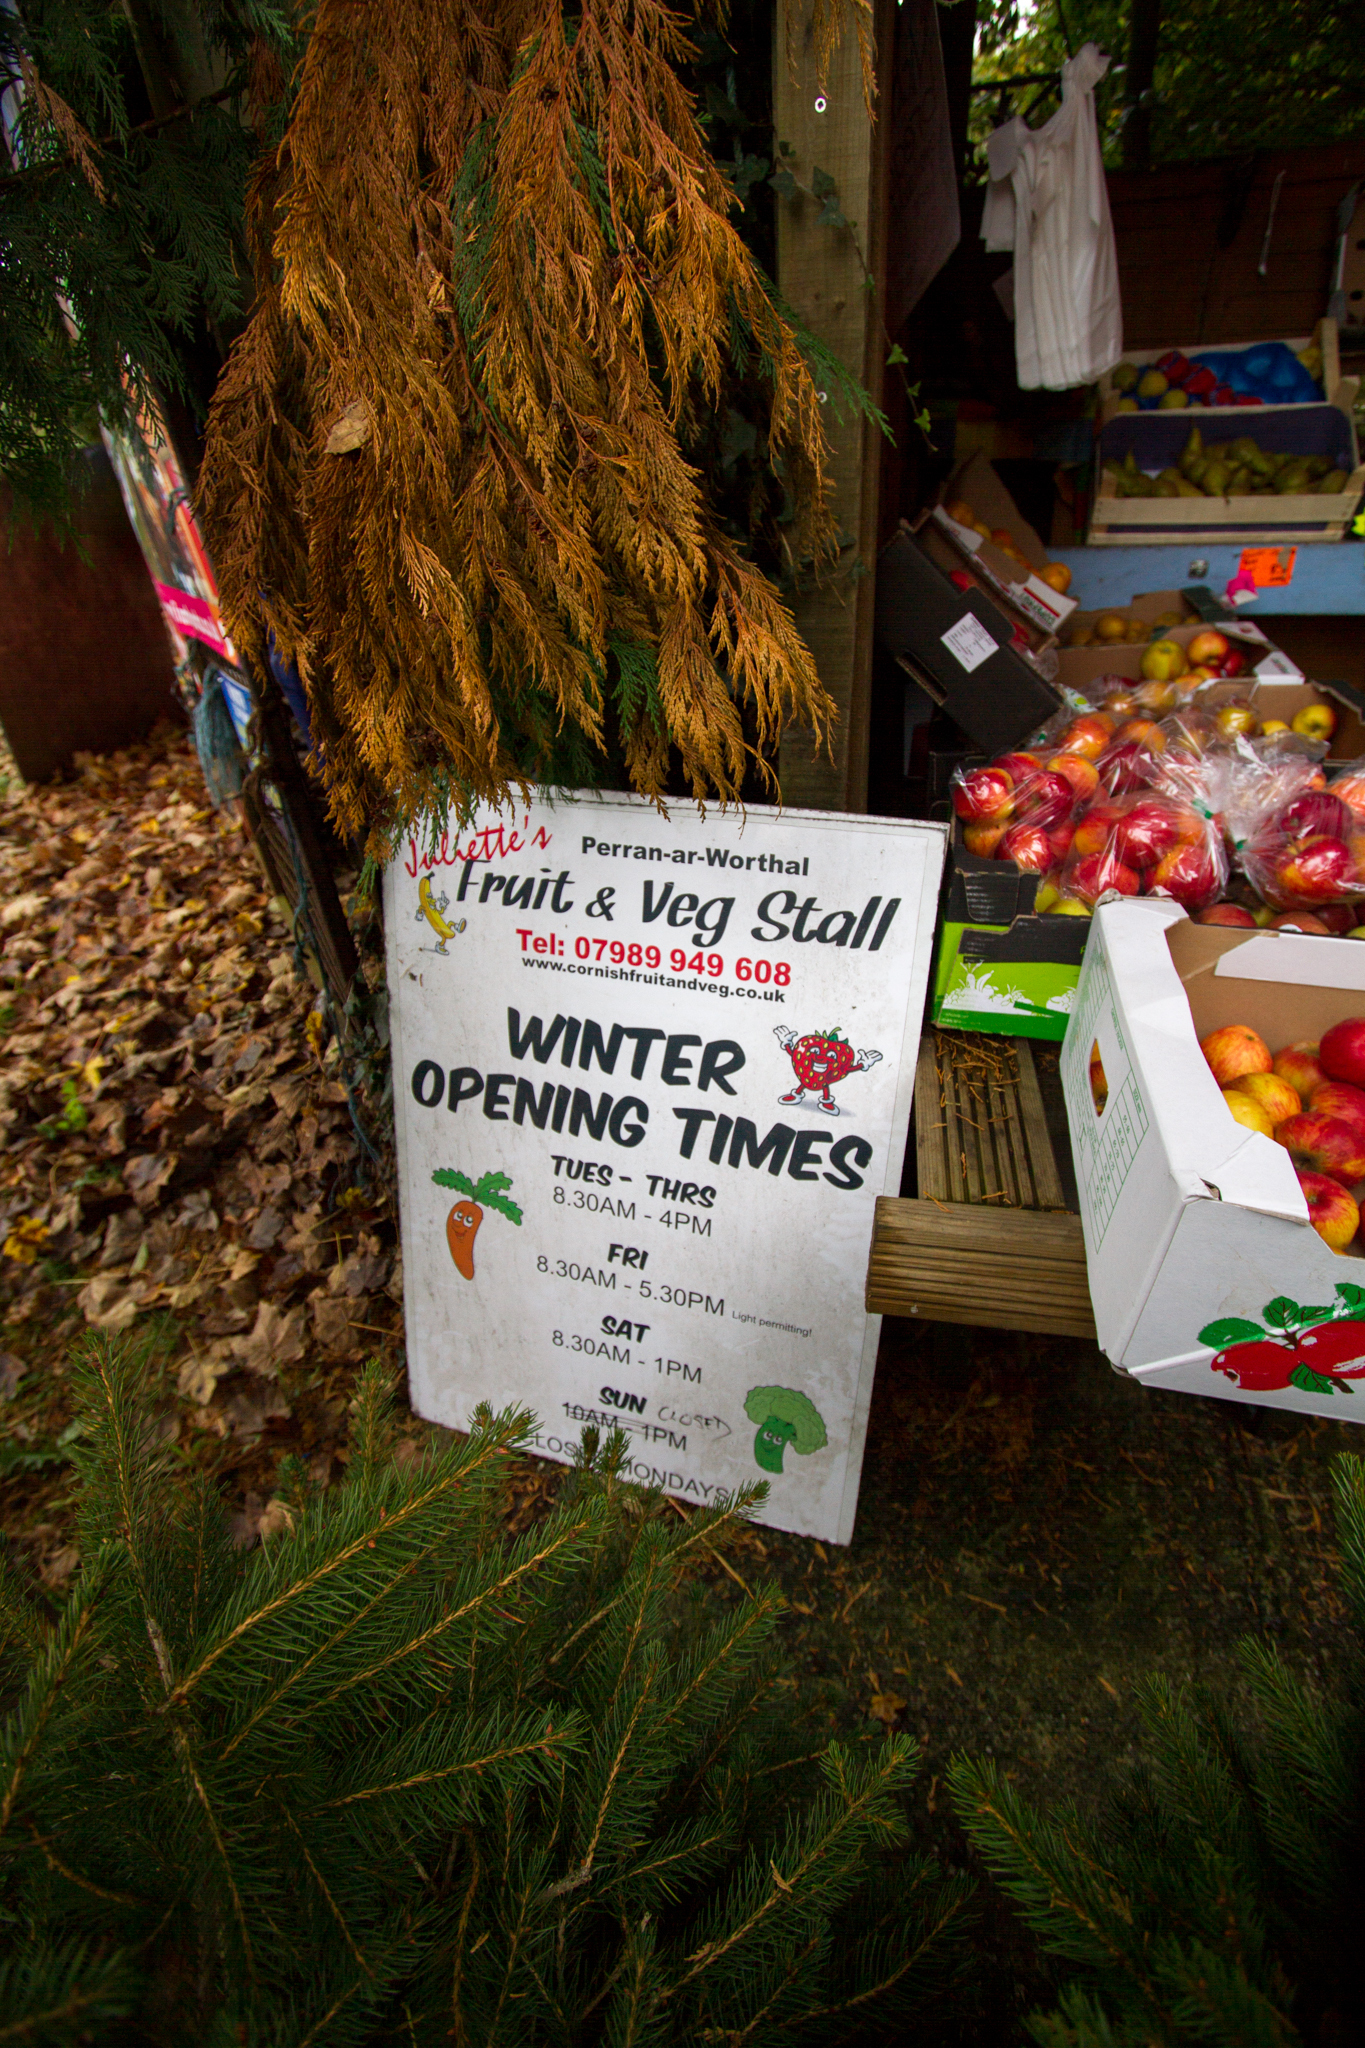 A sign for the winter opening times of the Fruit and Veg stall, placed amongst some of the trees and fruits in the stall. Perran-ar-Worthal, Cornwall. 30.10.15.